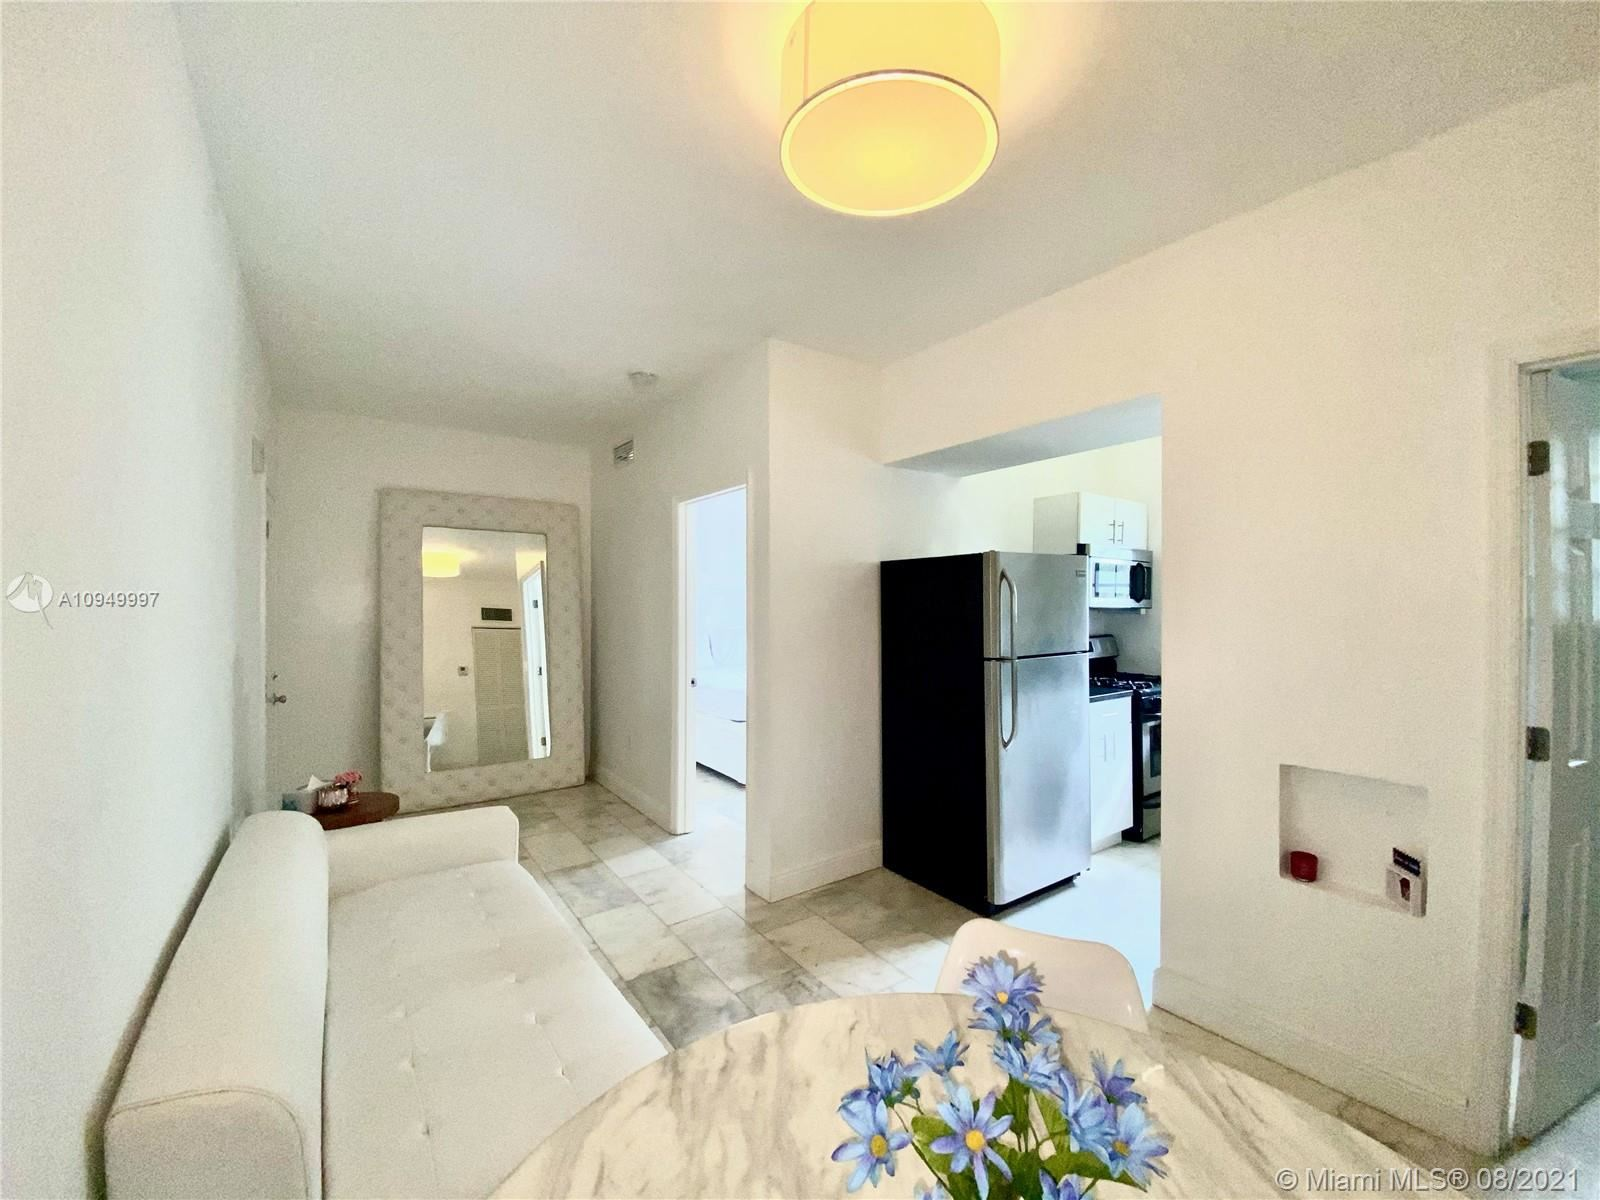 1526 Pennsylvania Ave #3, Miami Beach, FL 33139 - #: A10949997